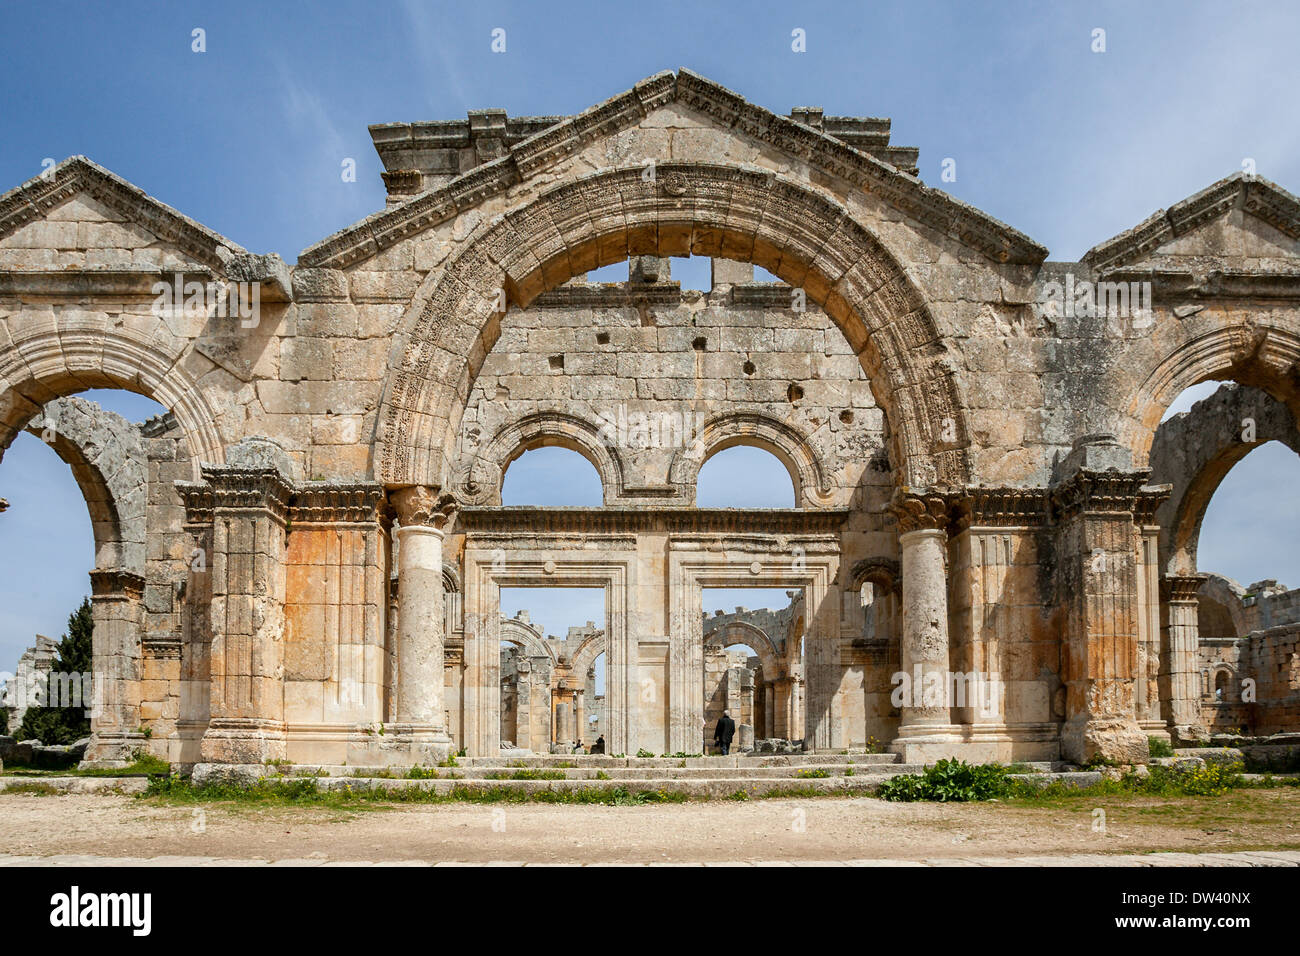 The Byzantine Church of Saint Simeon Stylites is a historical ruin located about 30 km  northwest of Aleppo, Syria. - Stock Image